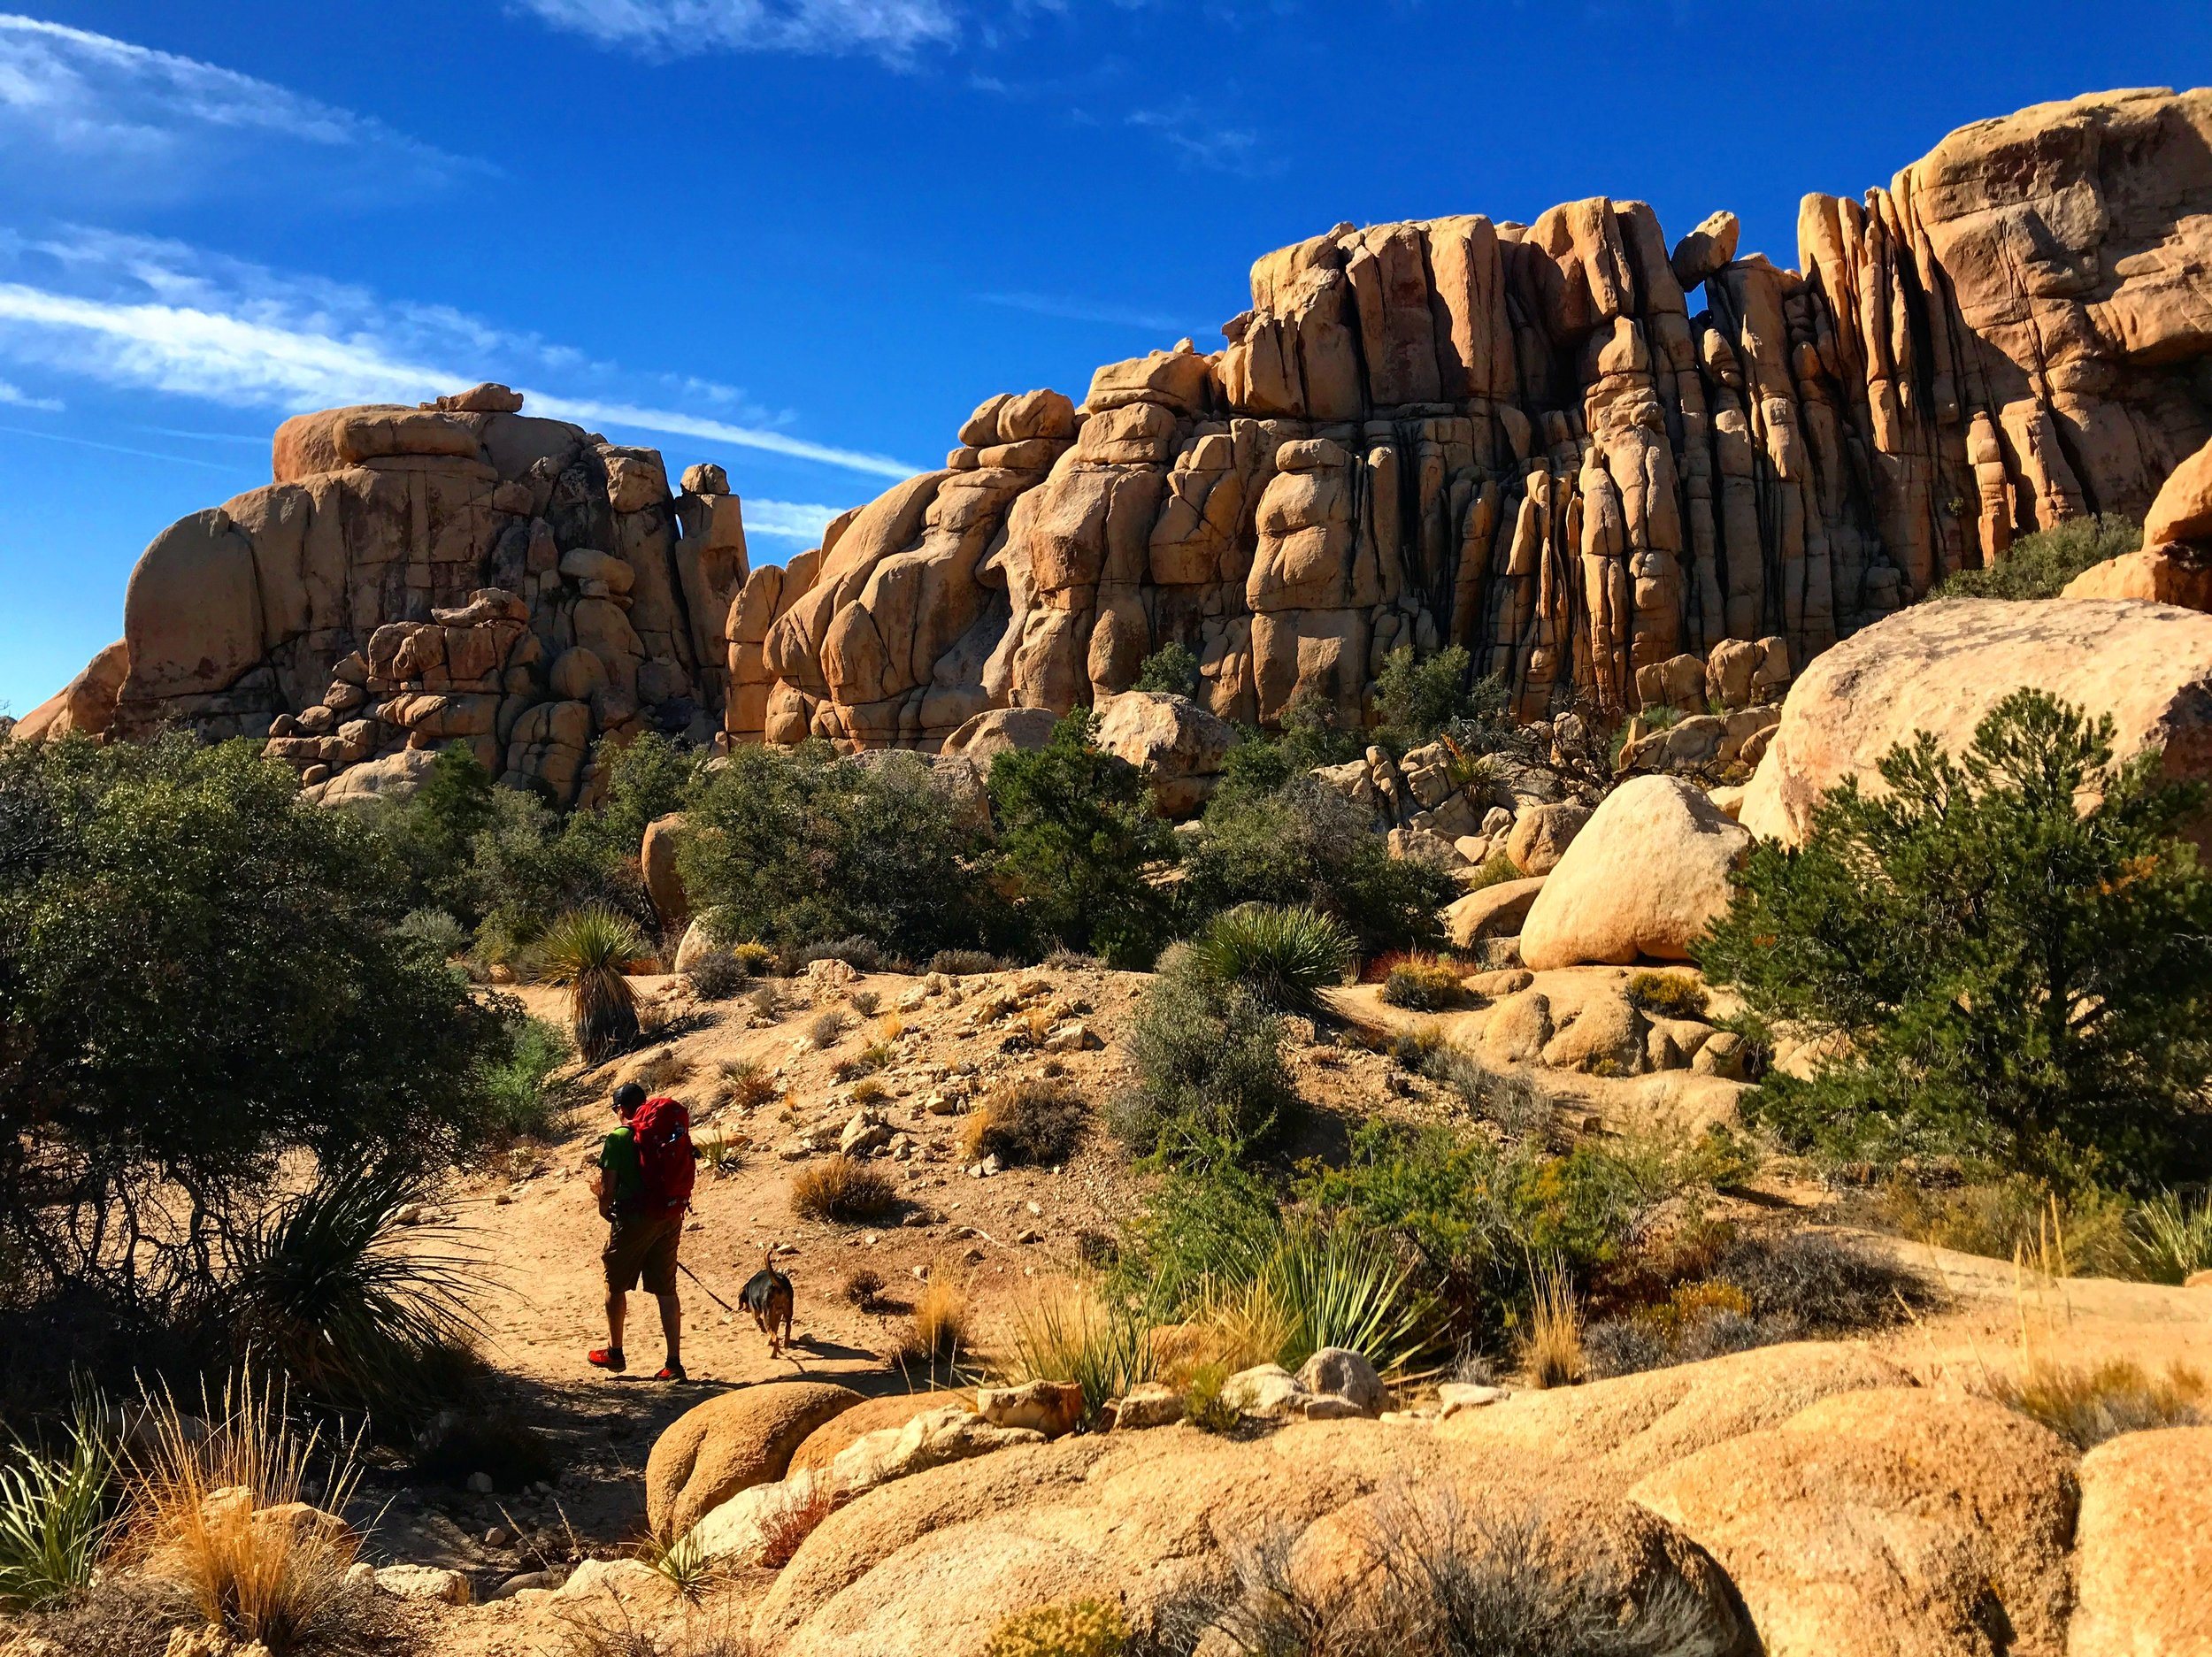 Hiking to our next climbing spot in Joshua Tree National Park.